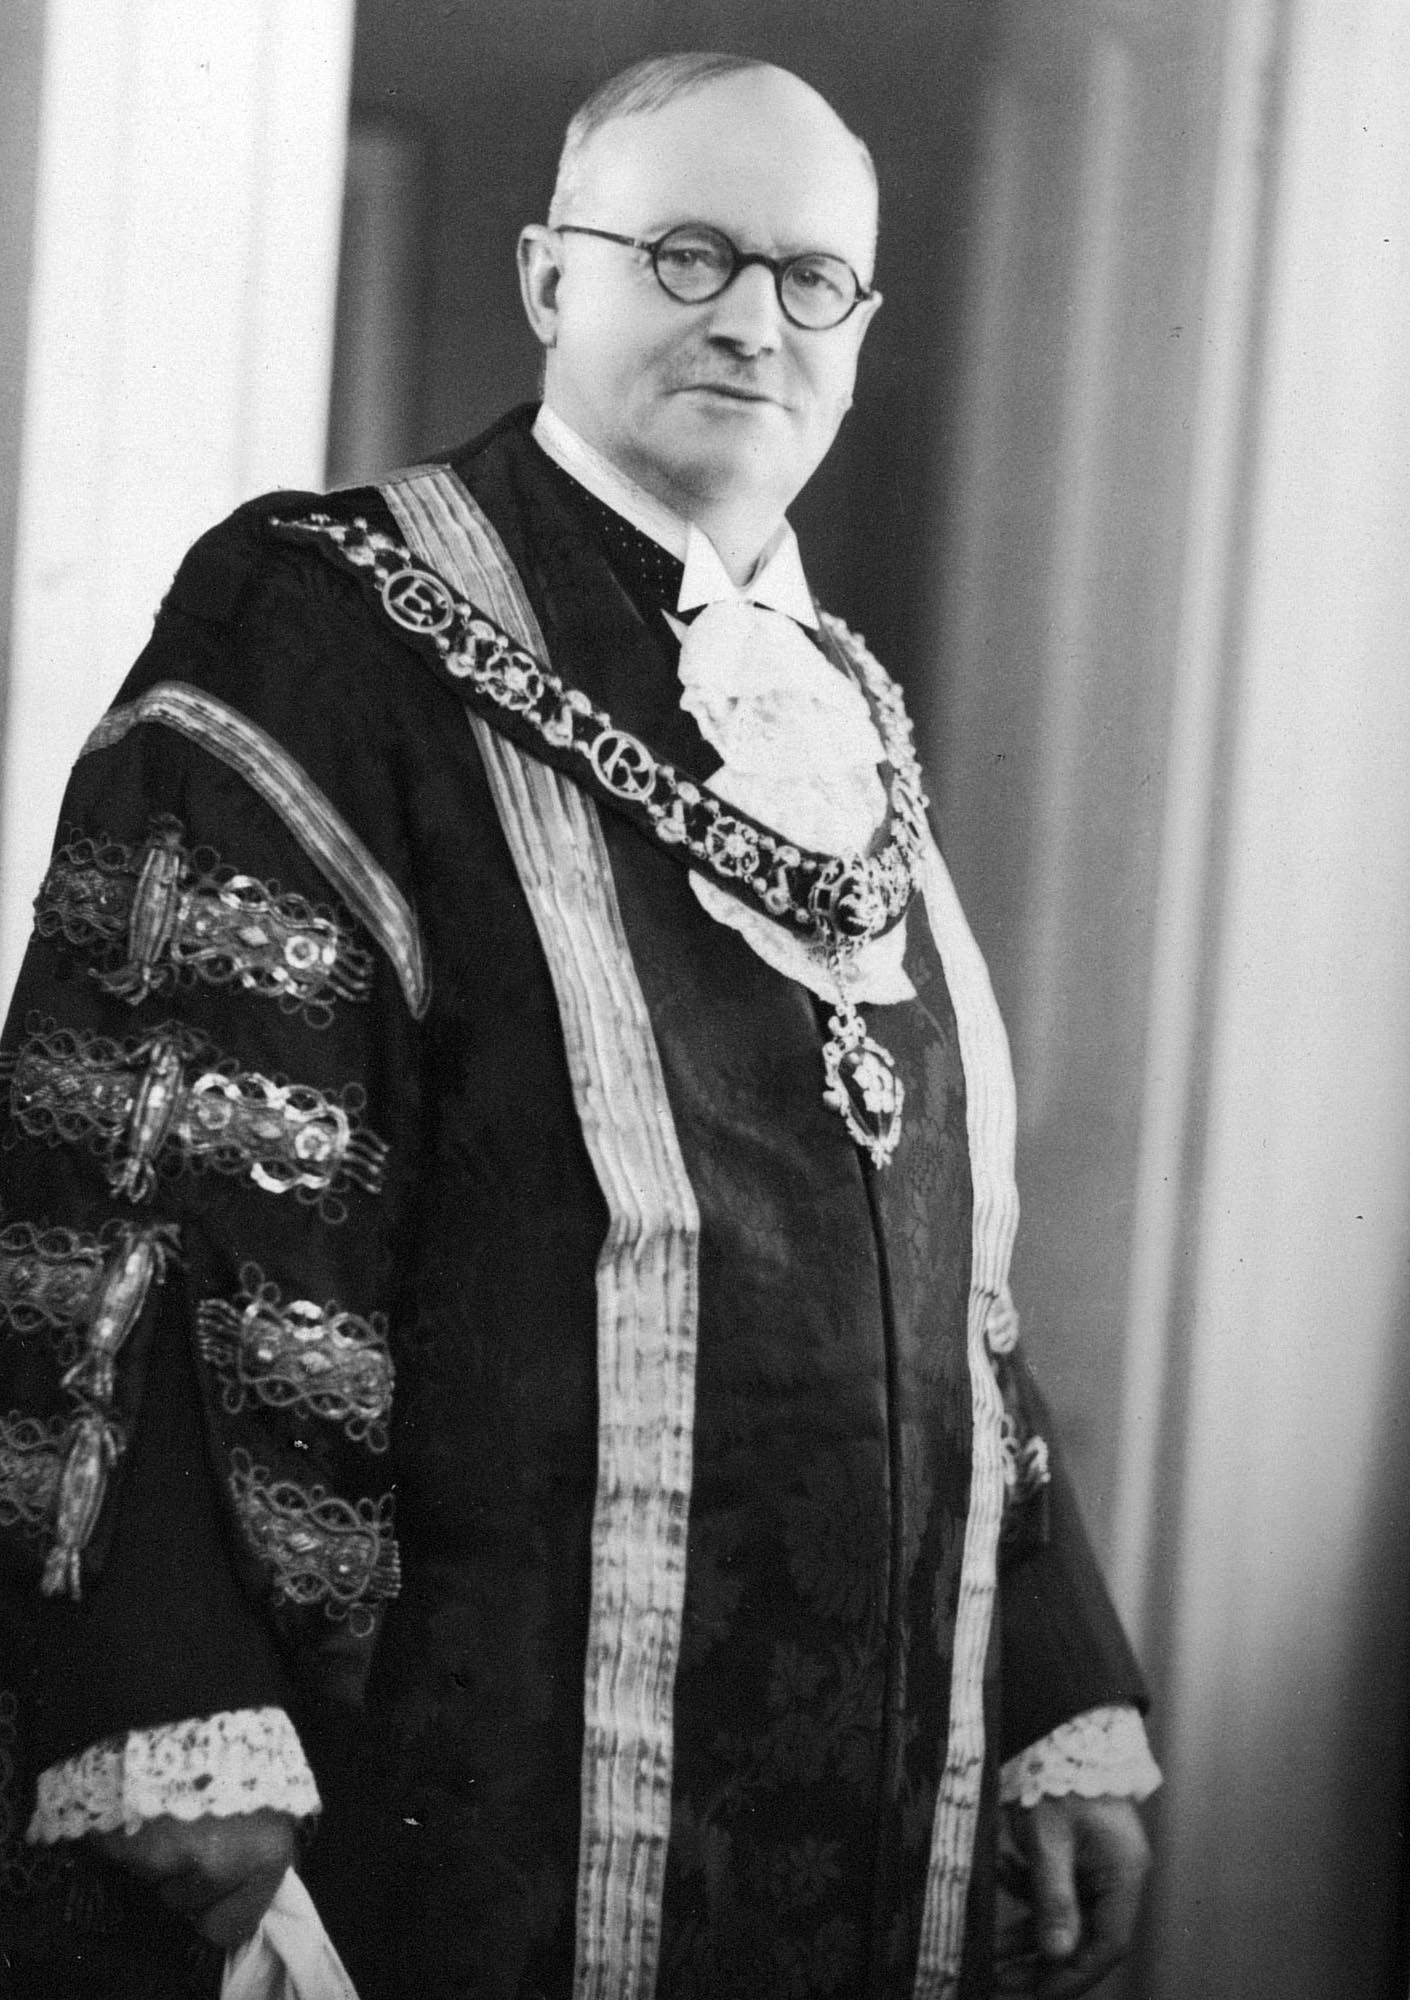 Lord Mayor, Councillor Frank Acton, who opened the building in 1938 -